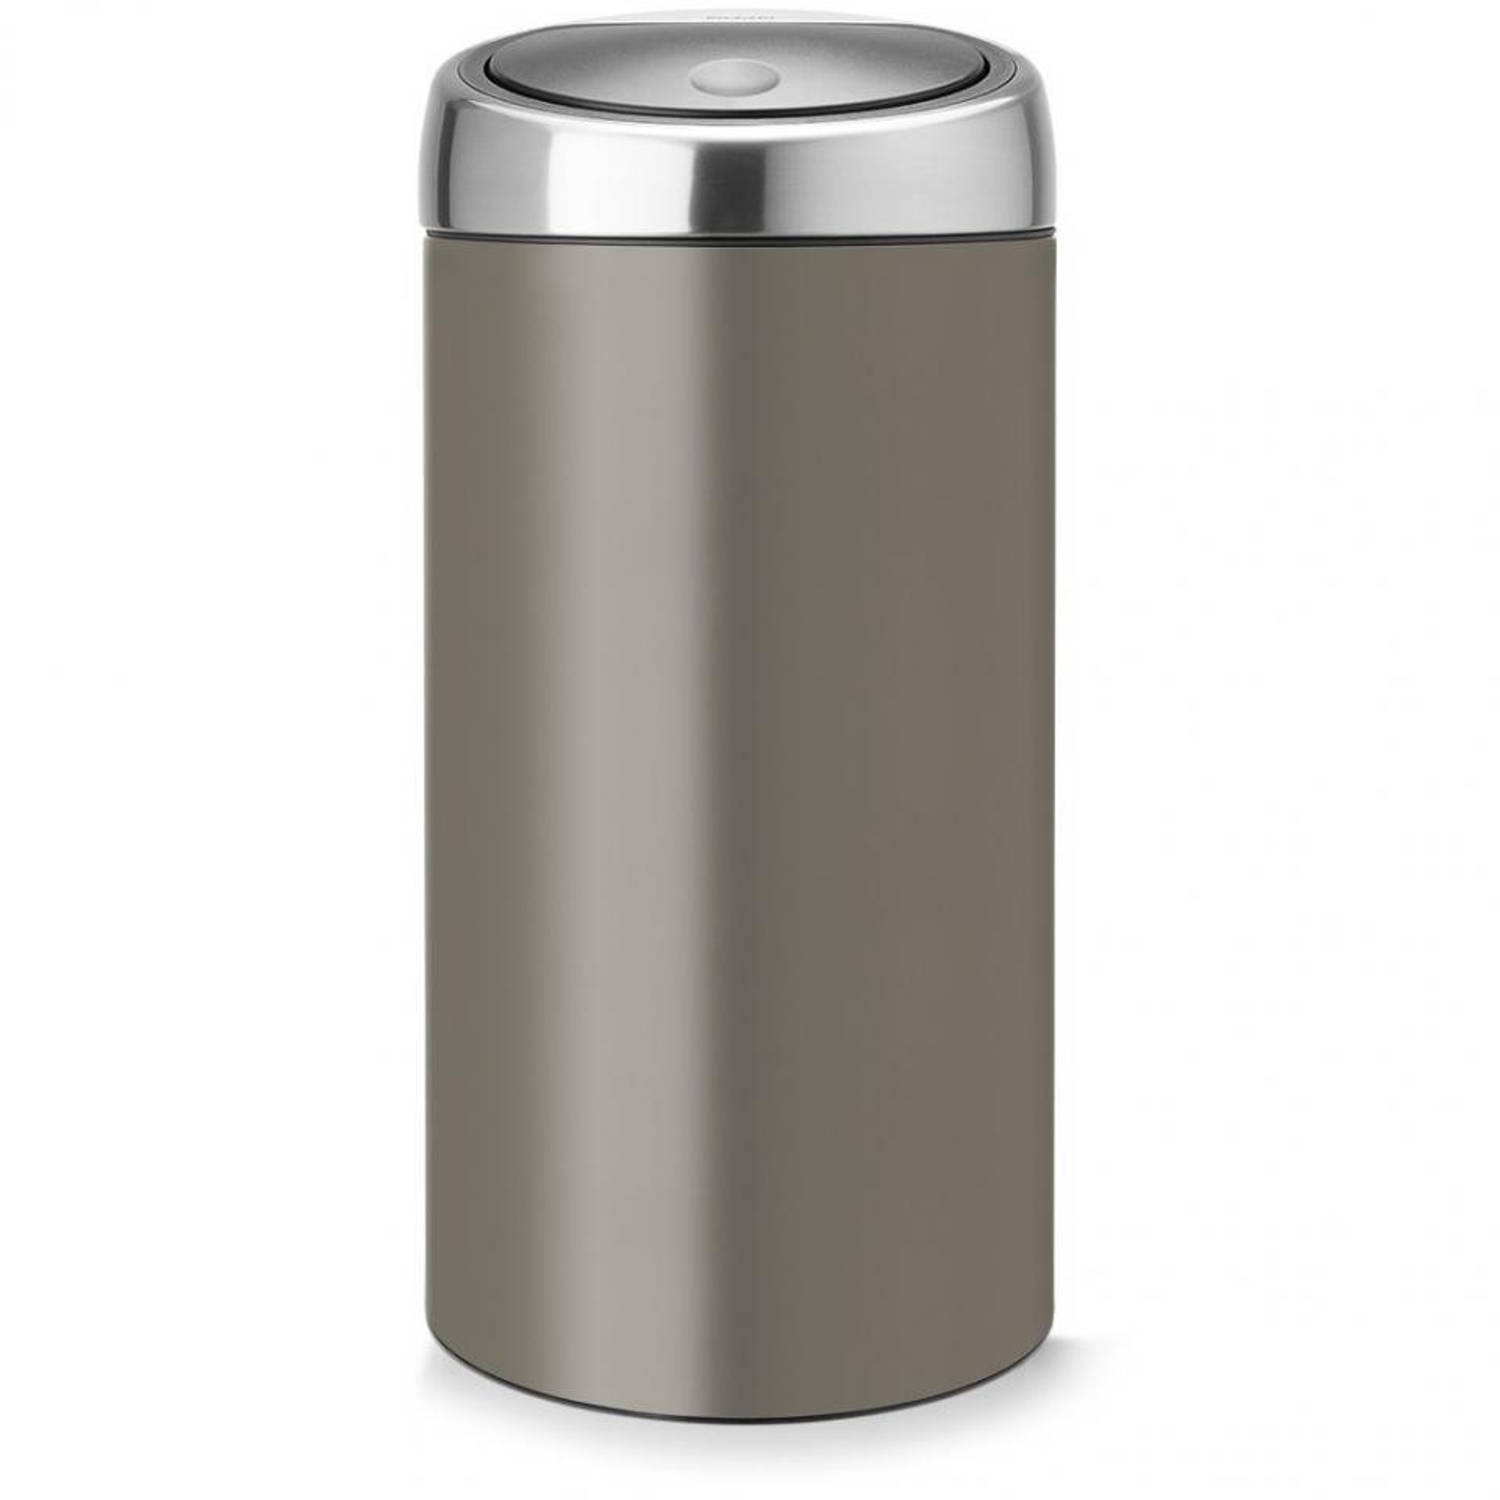 Foto Brabantia Touch Bin Recycle 2 x 20 l - Platinum met Fingerprint Proof deksel